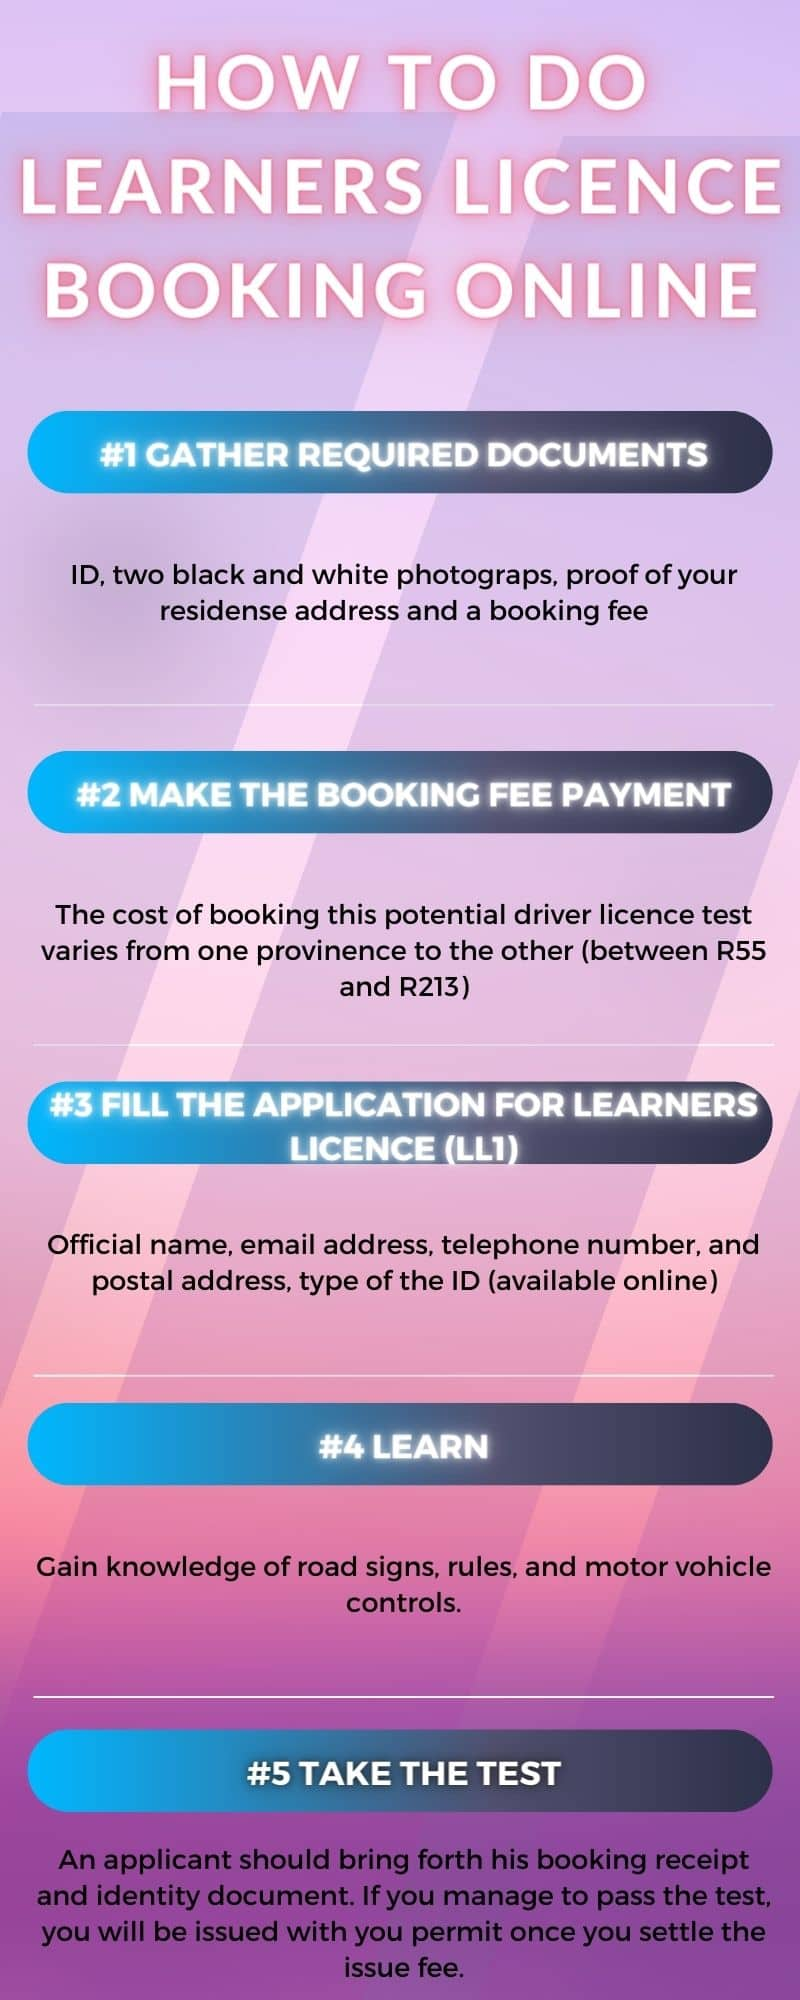 learner's license booking